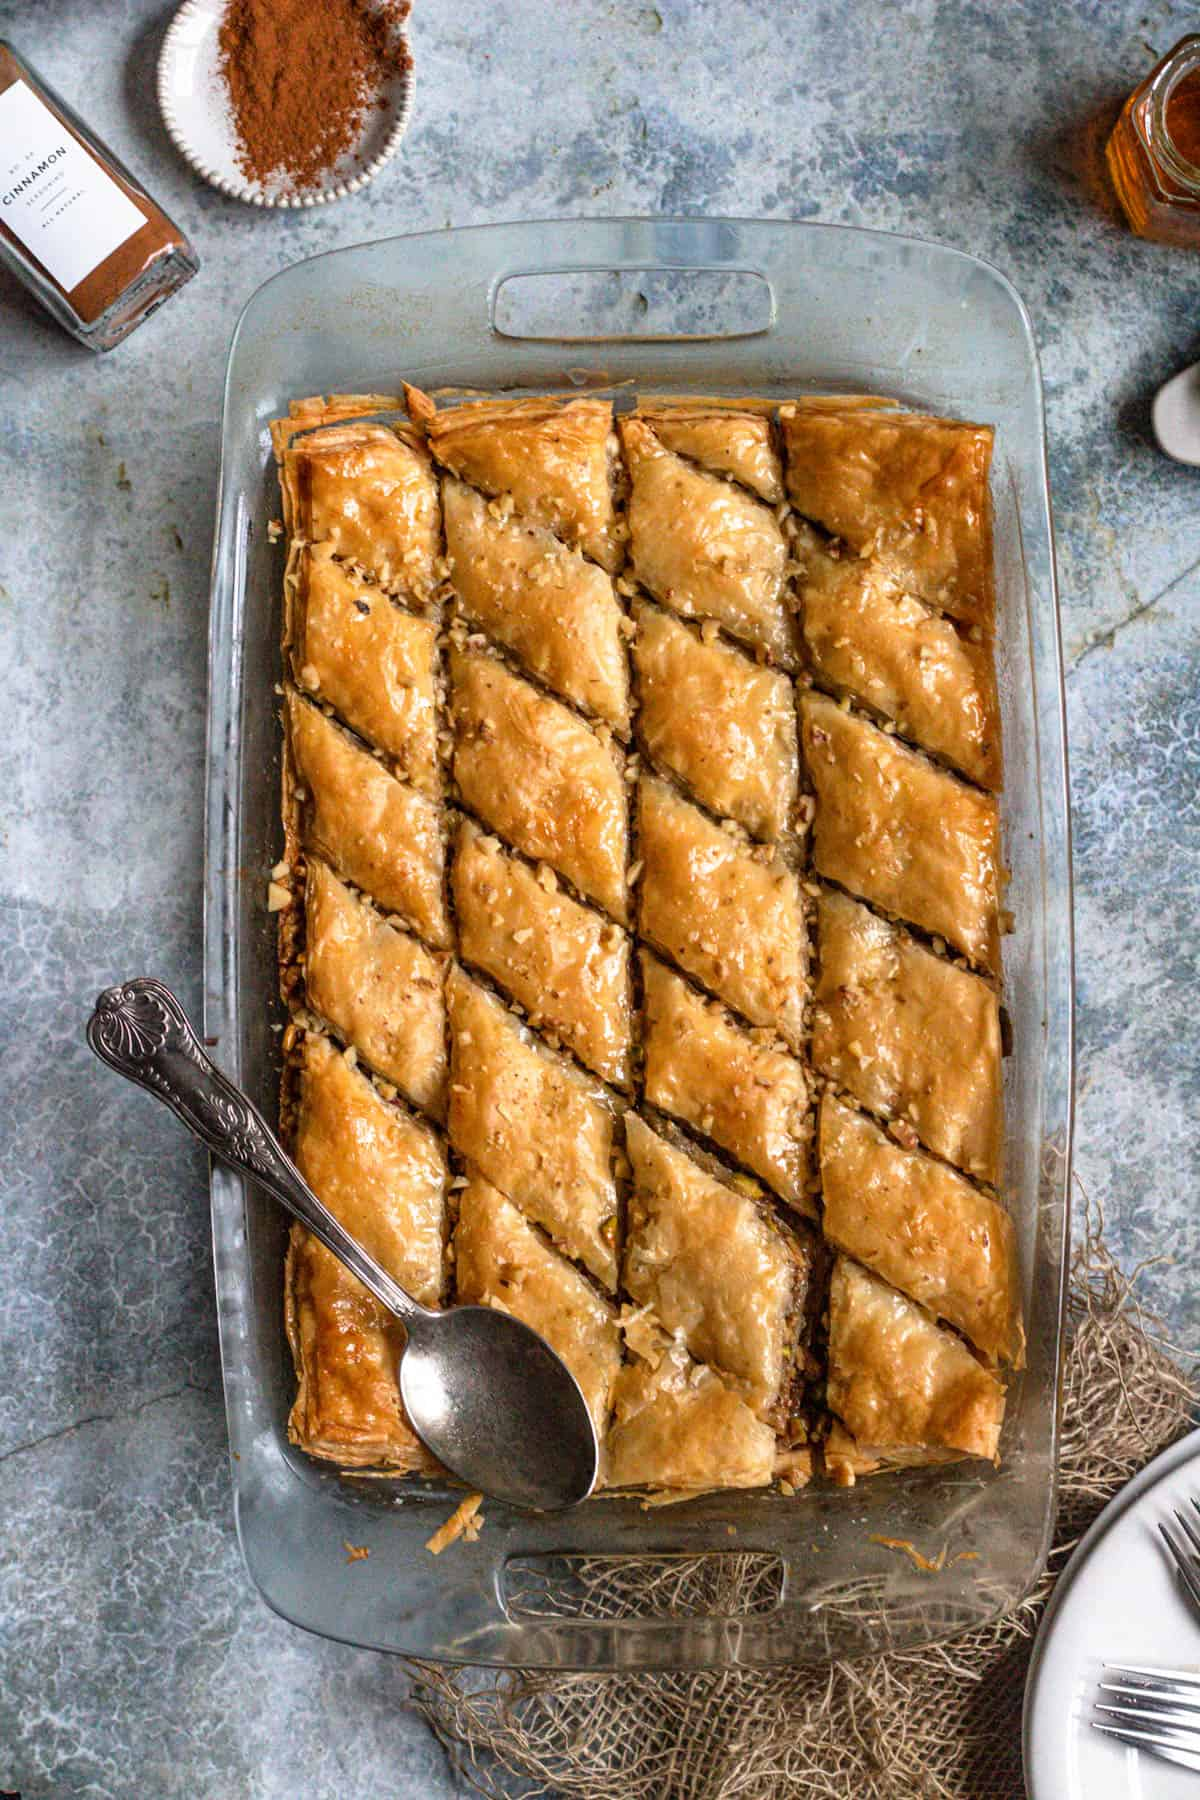 Full tray of pistachio baklava with a spoon across the top